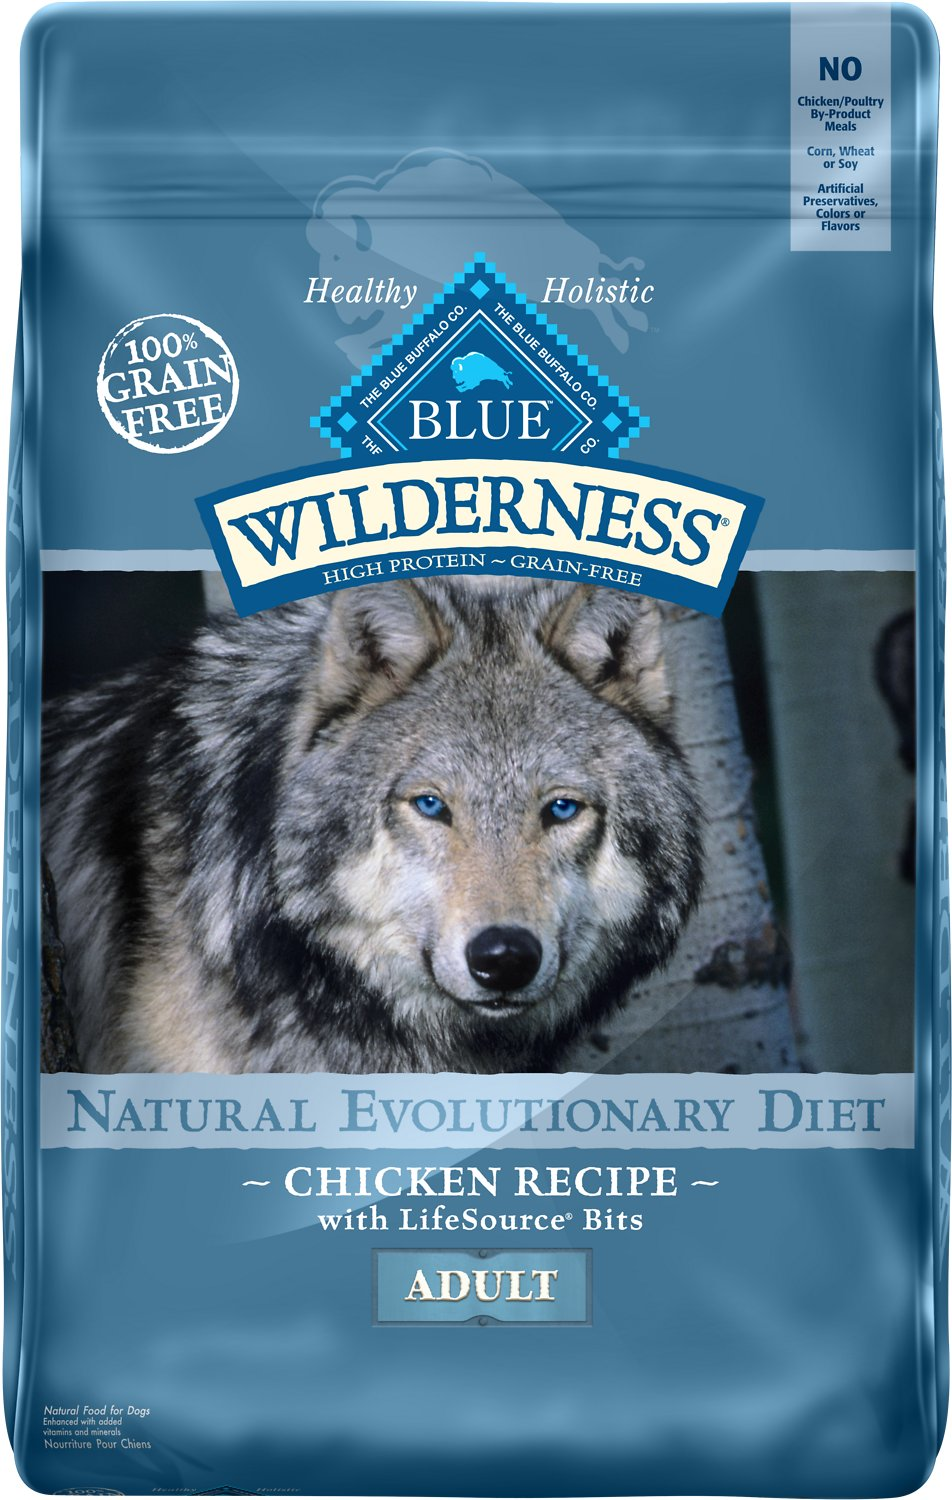 Grain Free Dog Food For Golden Retrievers